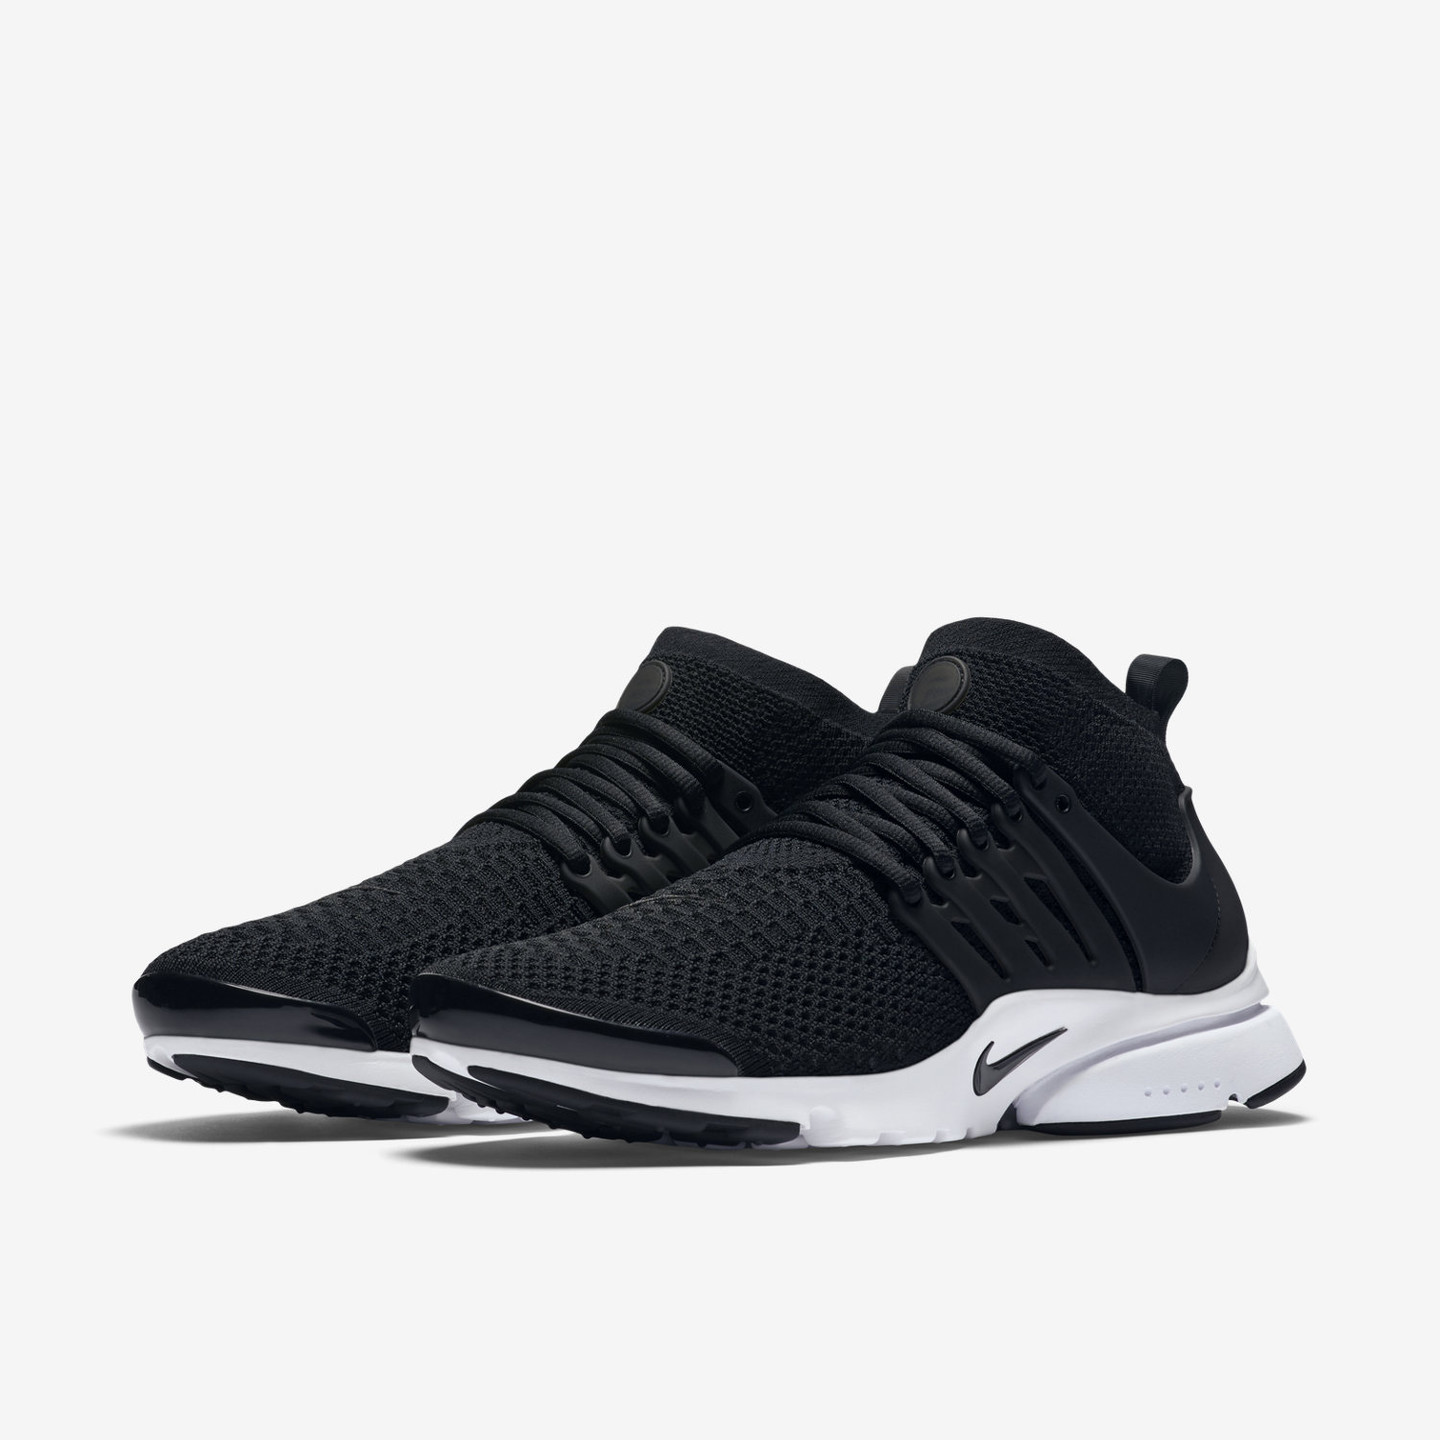 Nike Air Presto Ultra Flyknit Black / White 835570-001-46